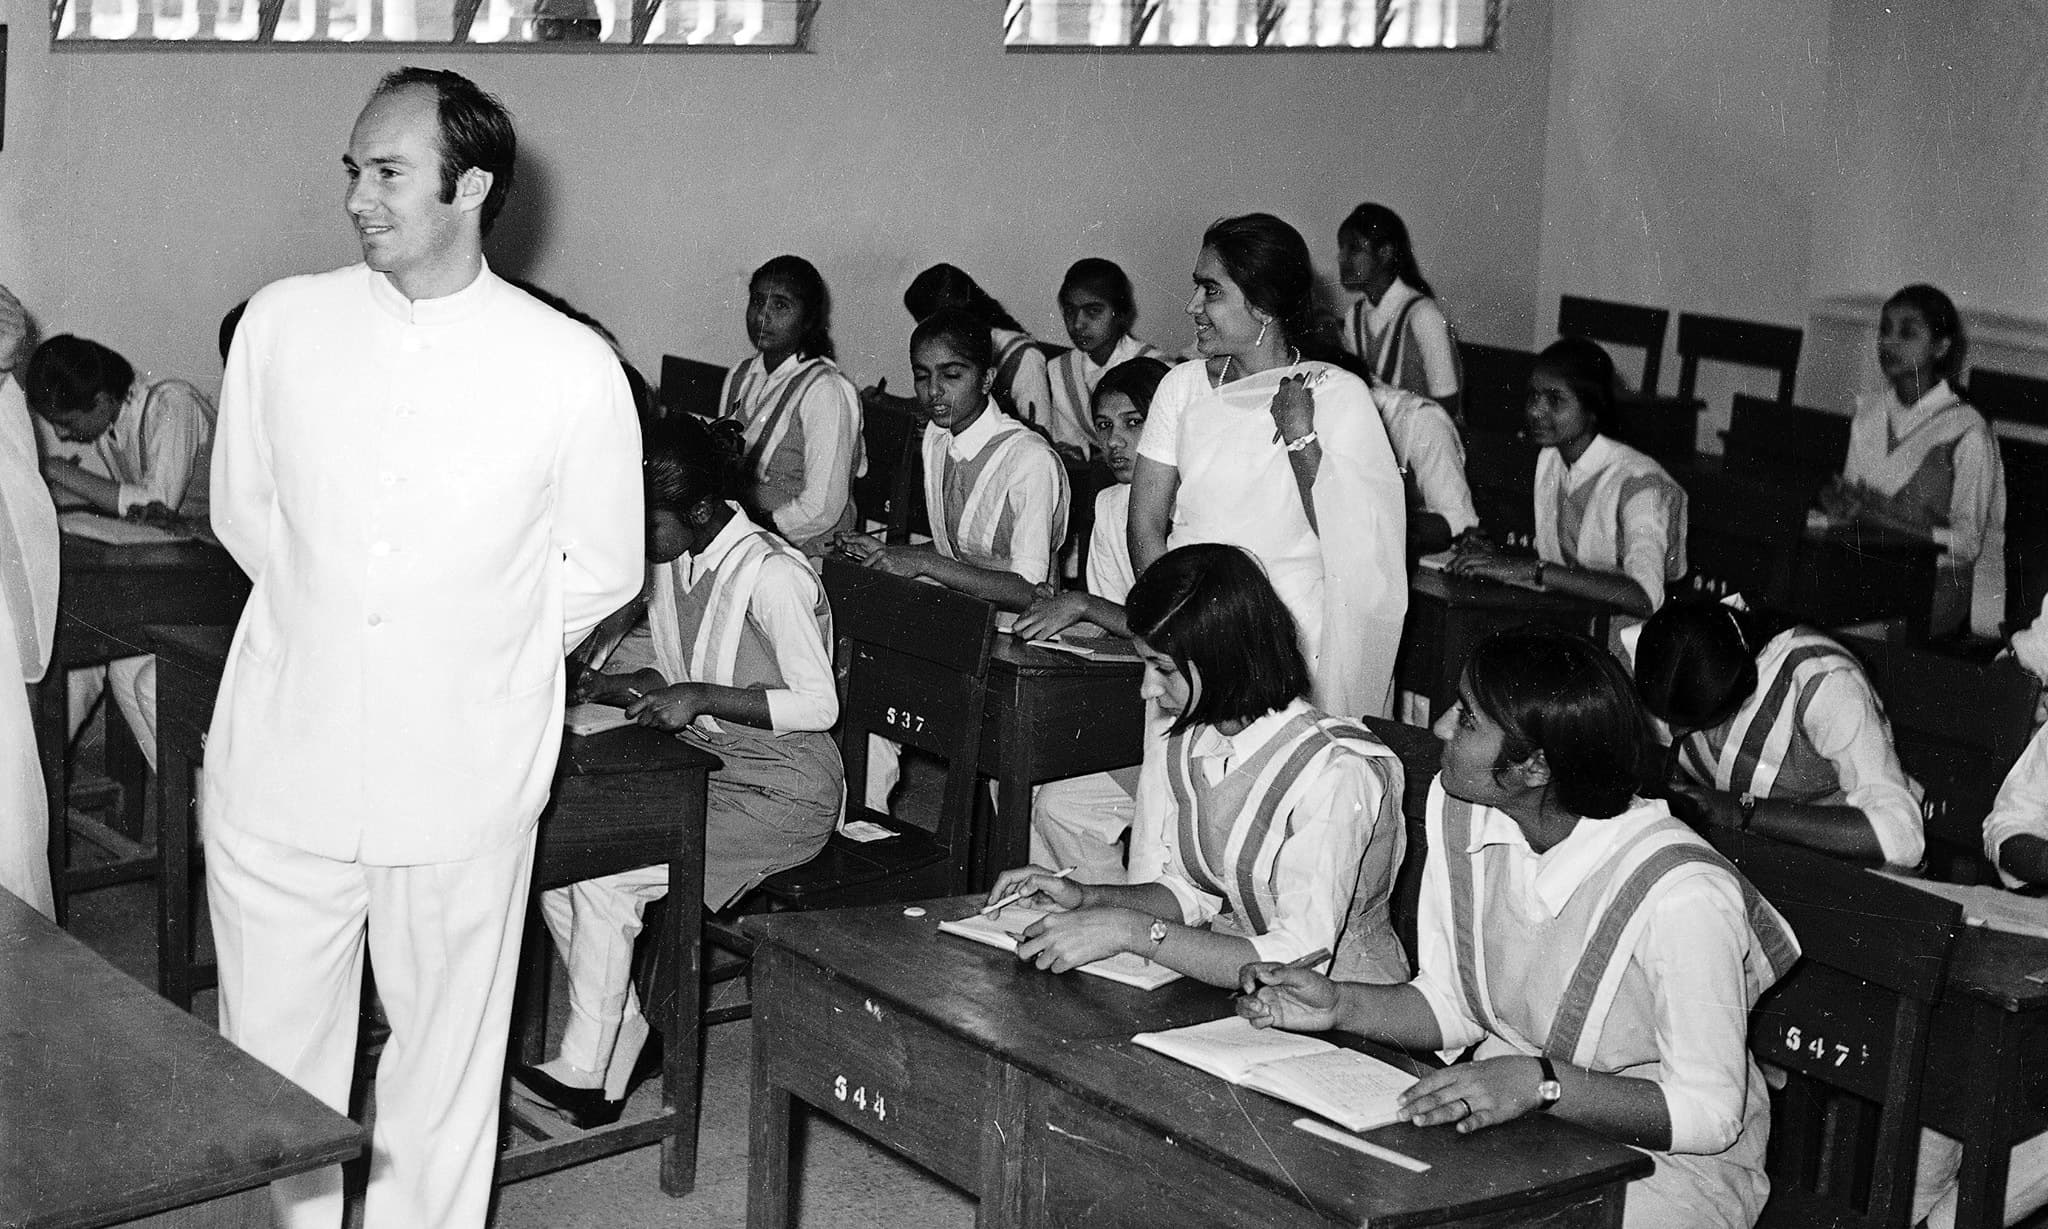 His Highness the Aga Khan meets with students at the Aga Khan III school (Sultan Mohammed Shah Foundation School) at Karimabad, Pakistan in 1970. - Photo credit: AKDN / Cumber Studios